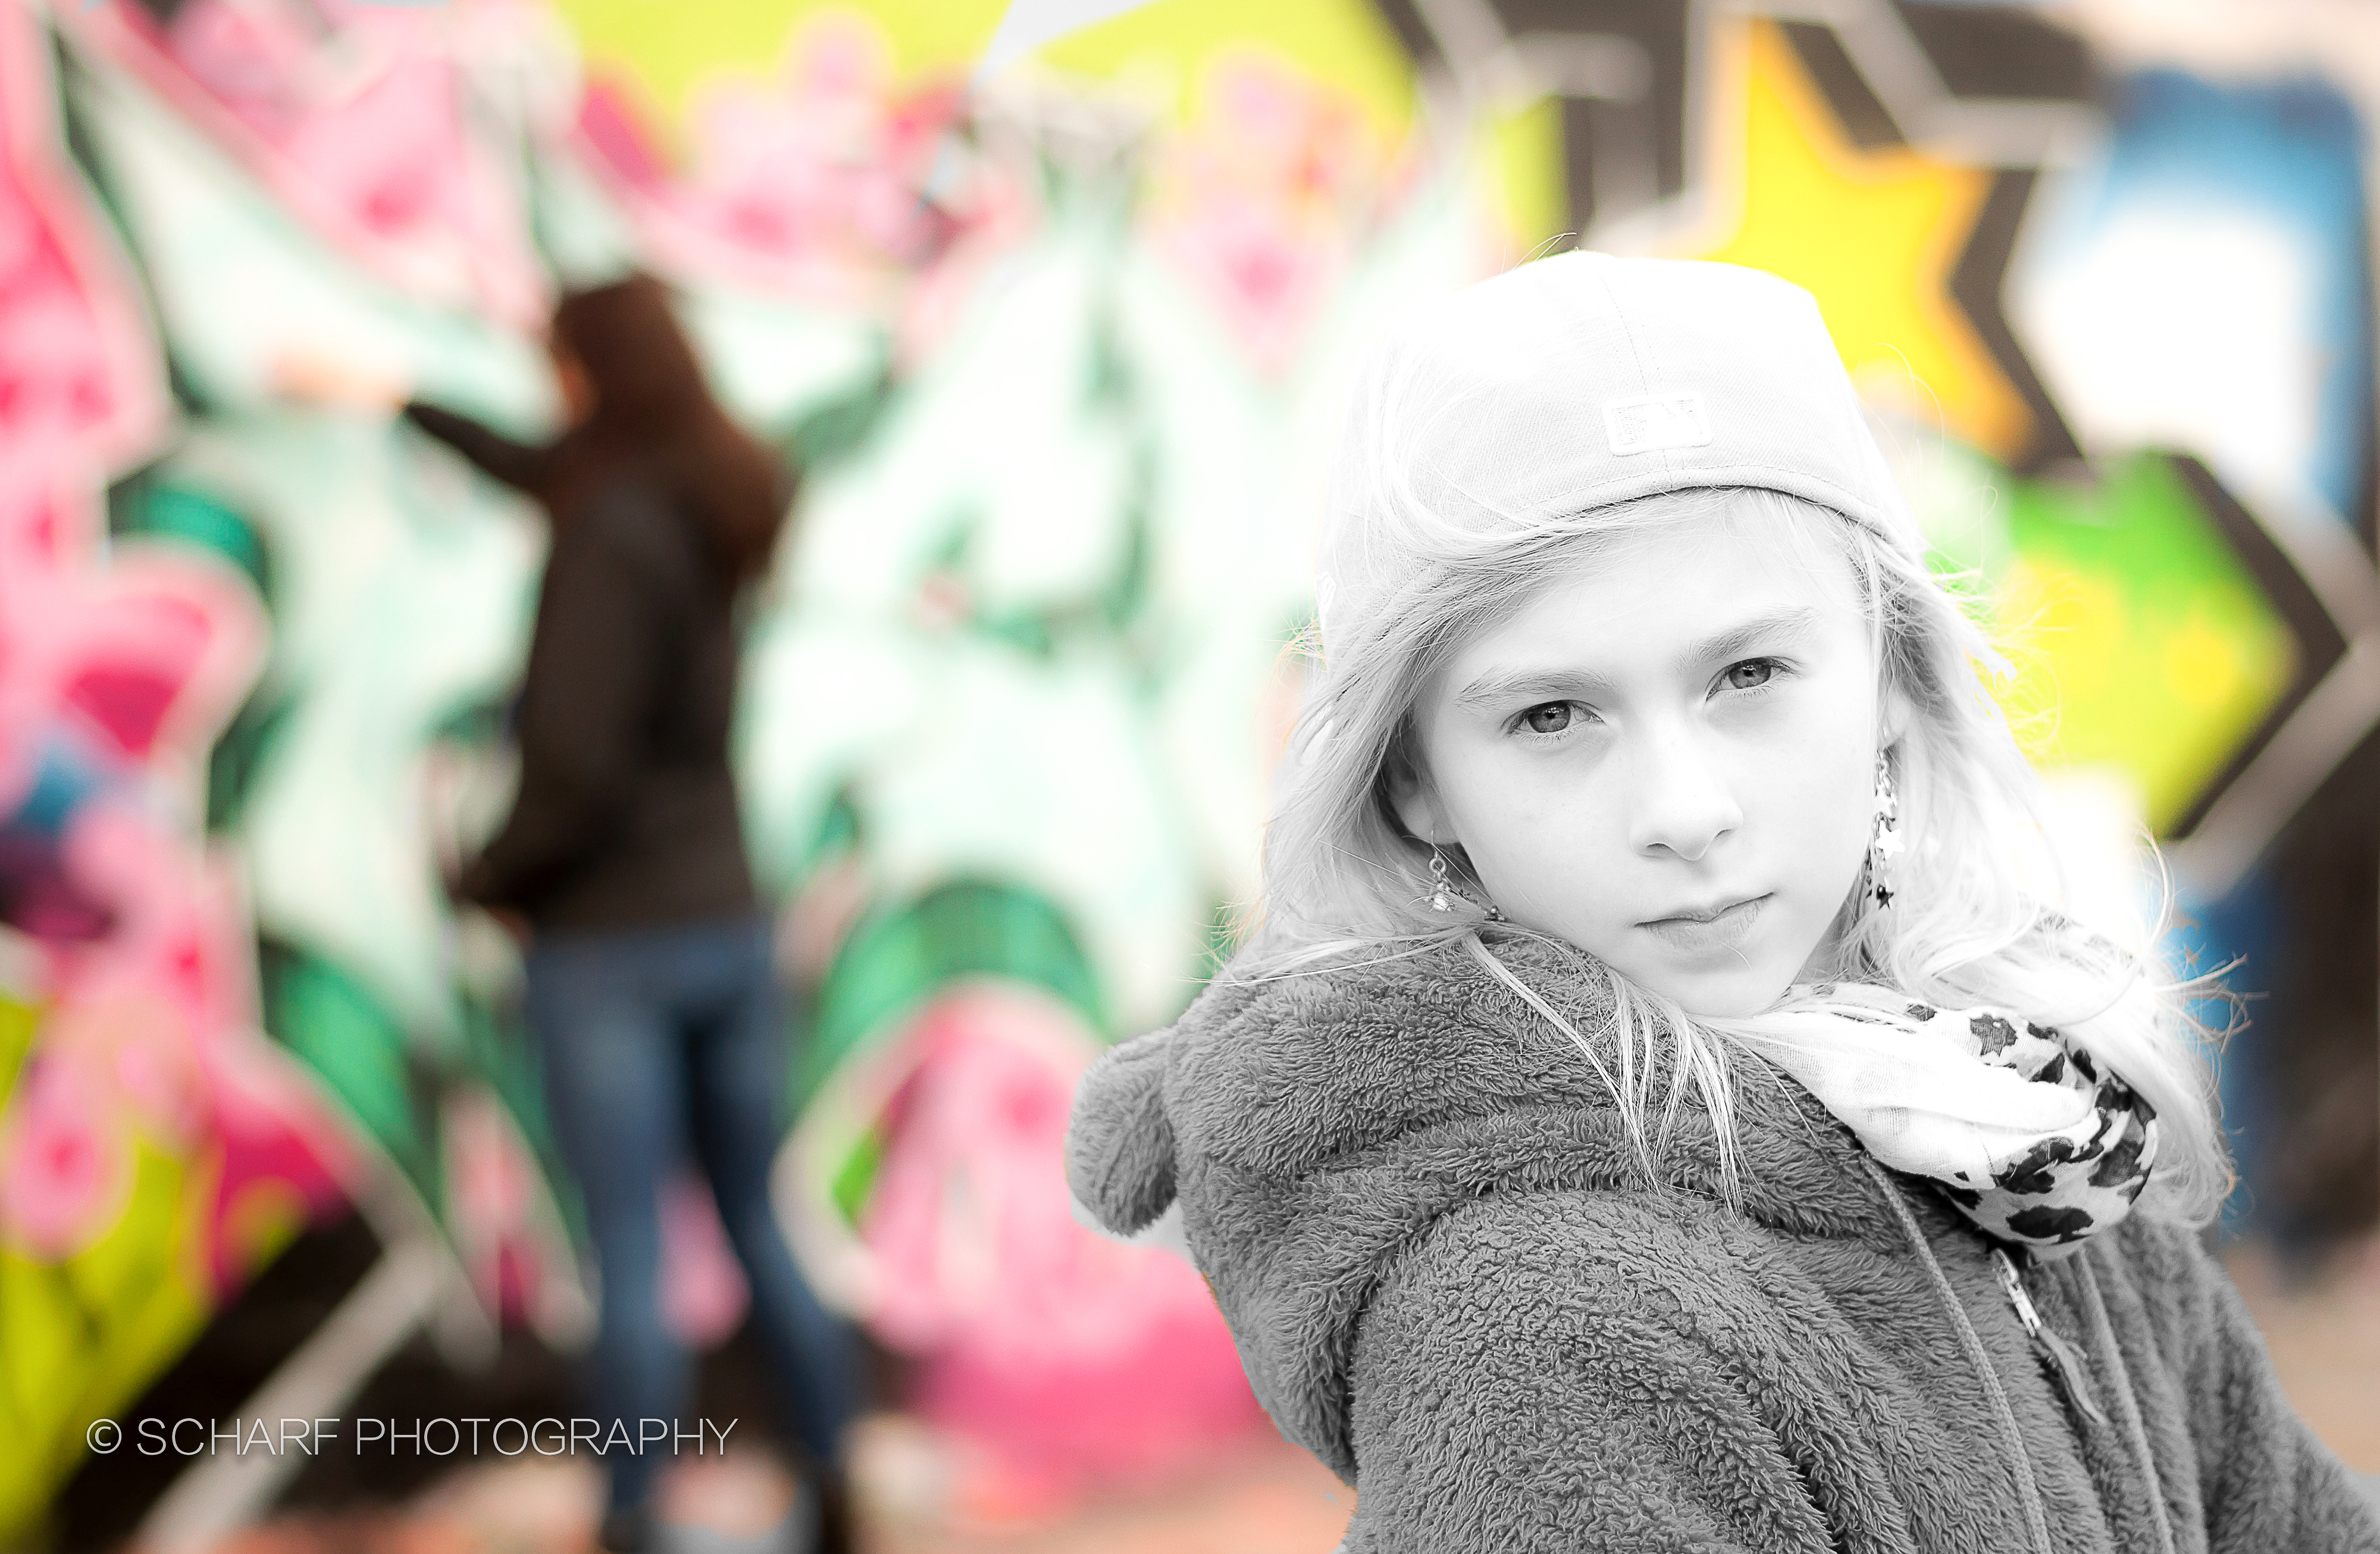 Graffity-Photoshooting